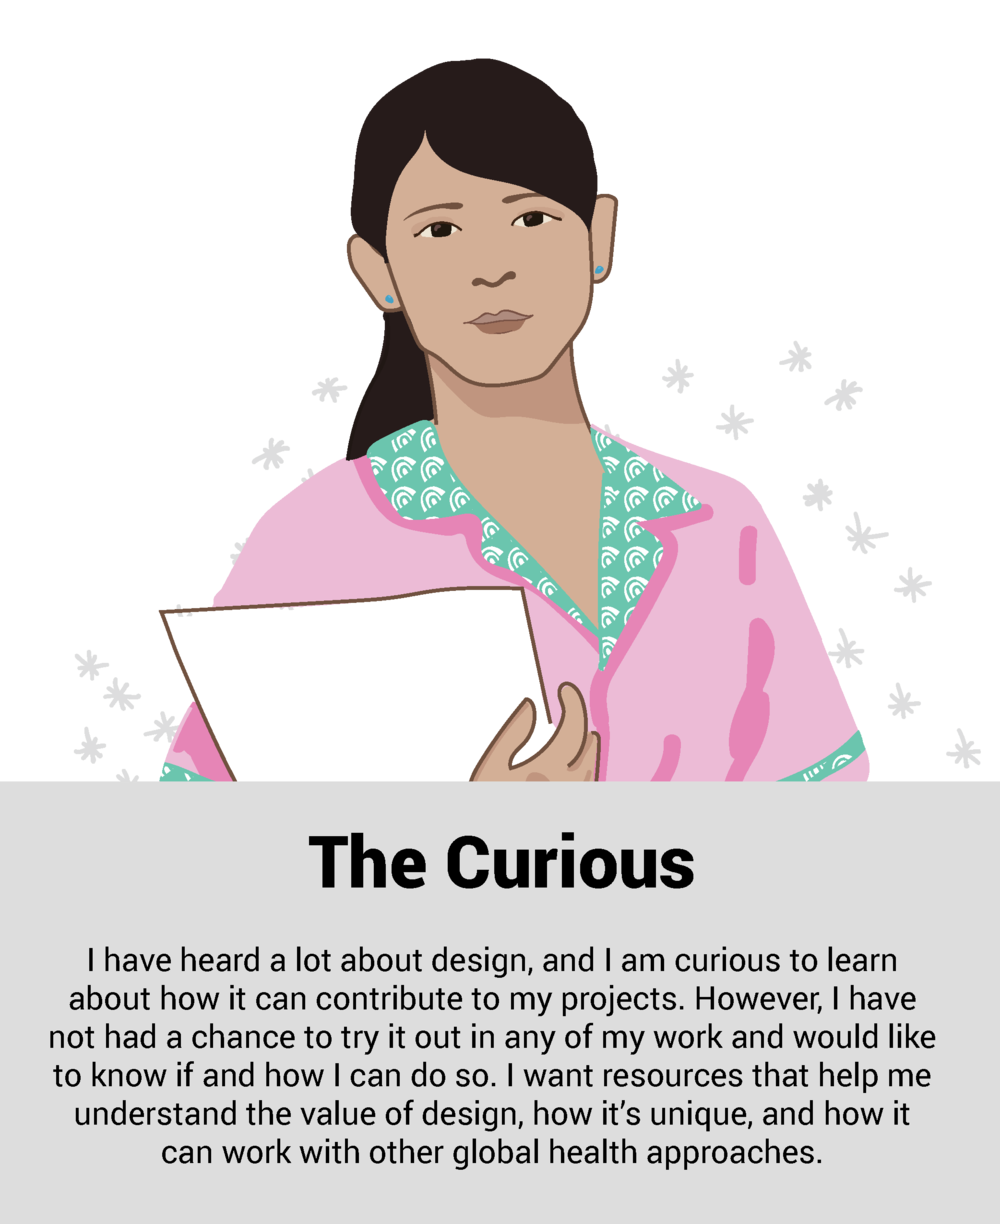 """'I have heard a lot about design, and I am curious to learn about how it can contribute to my projects. However, I have not had a chance to try it out in any of my work and would like to know if and how I can do so. I want resources that help me understand the value of design, how it's unique, and how it can work with other global health approaches""""."""